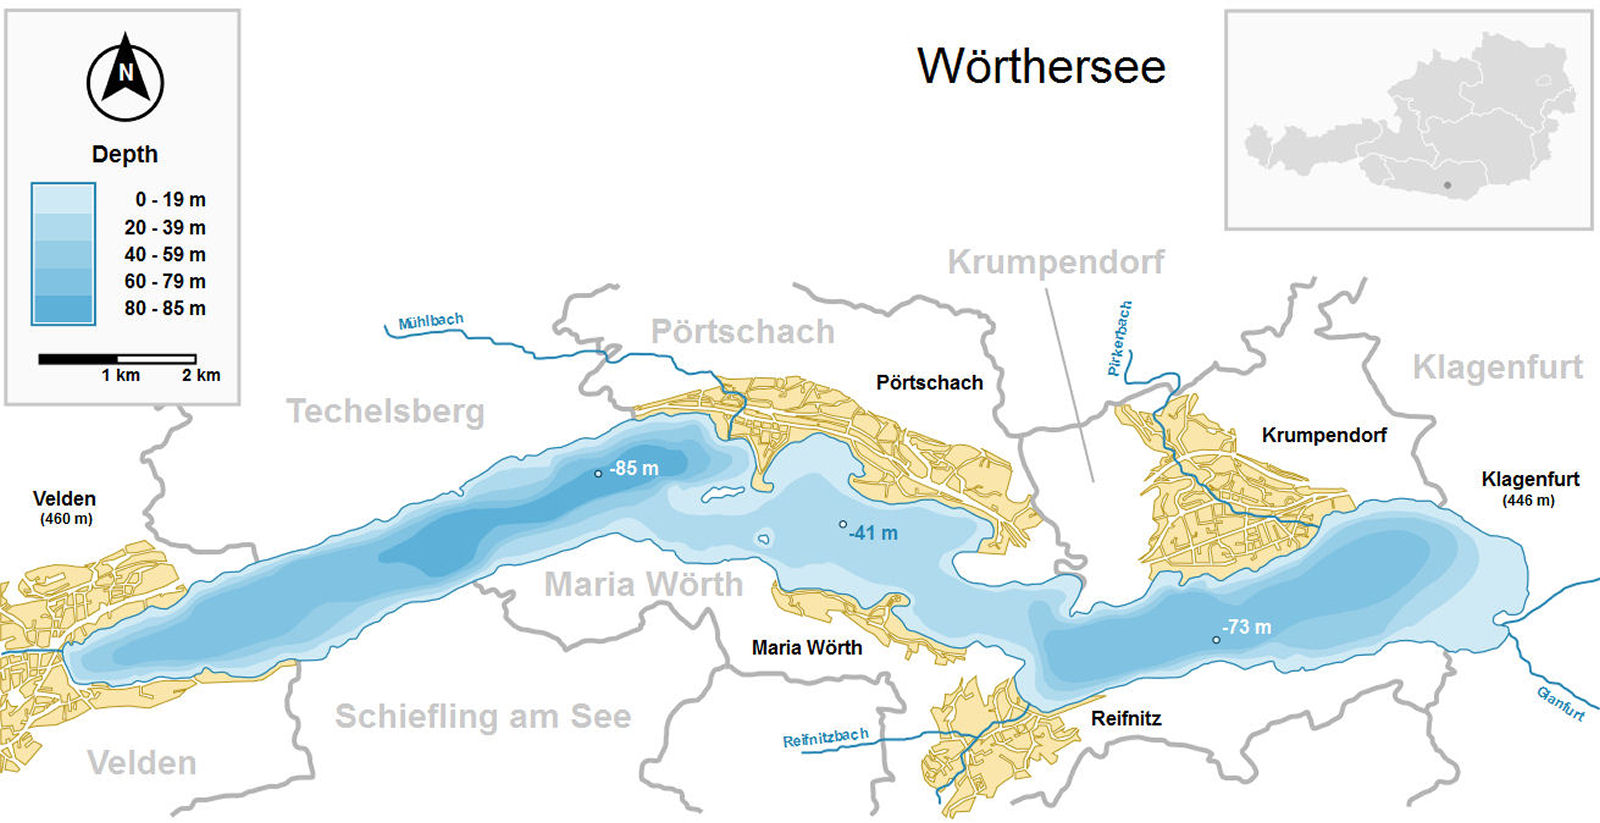 lake-woerthersee-austria-map